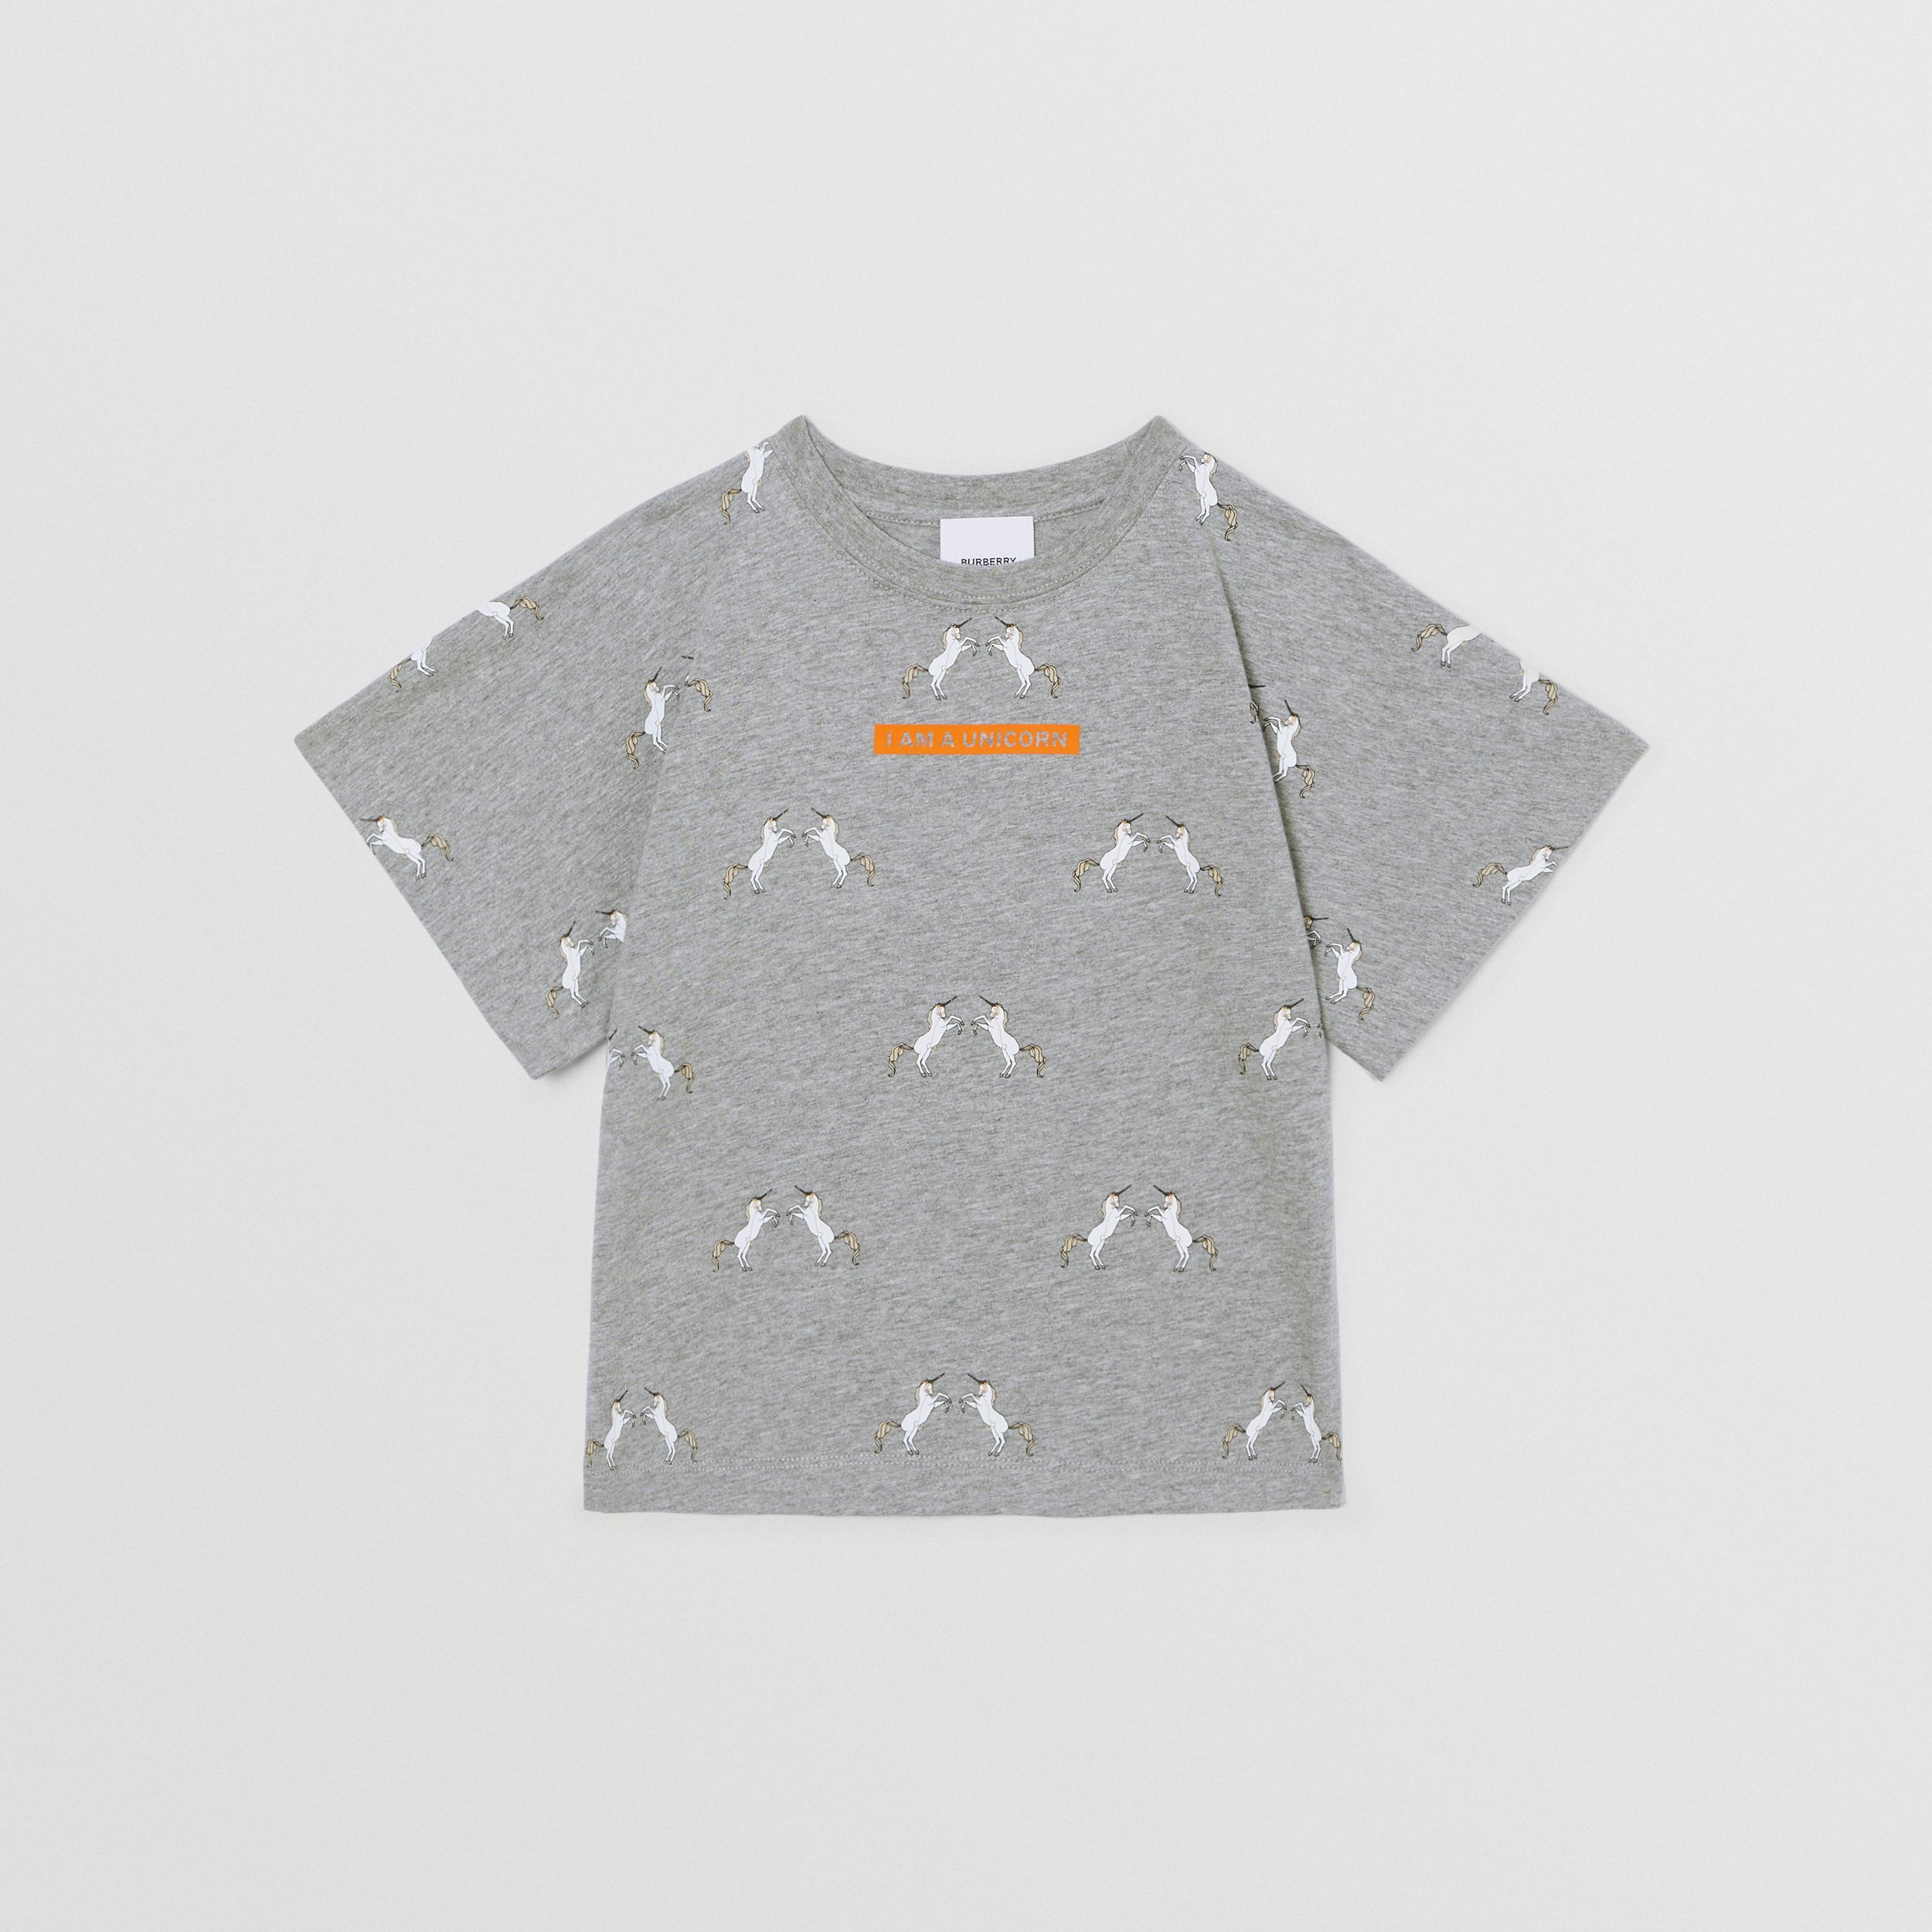 Unicorn Slogan Print Cotton T-shirt in Grey Melange | Burberry - 1